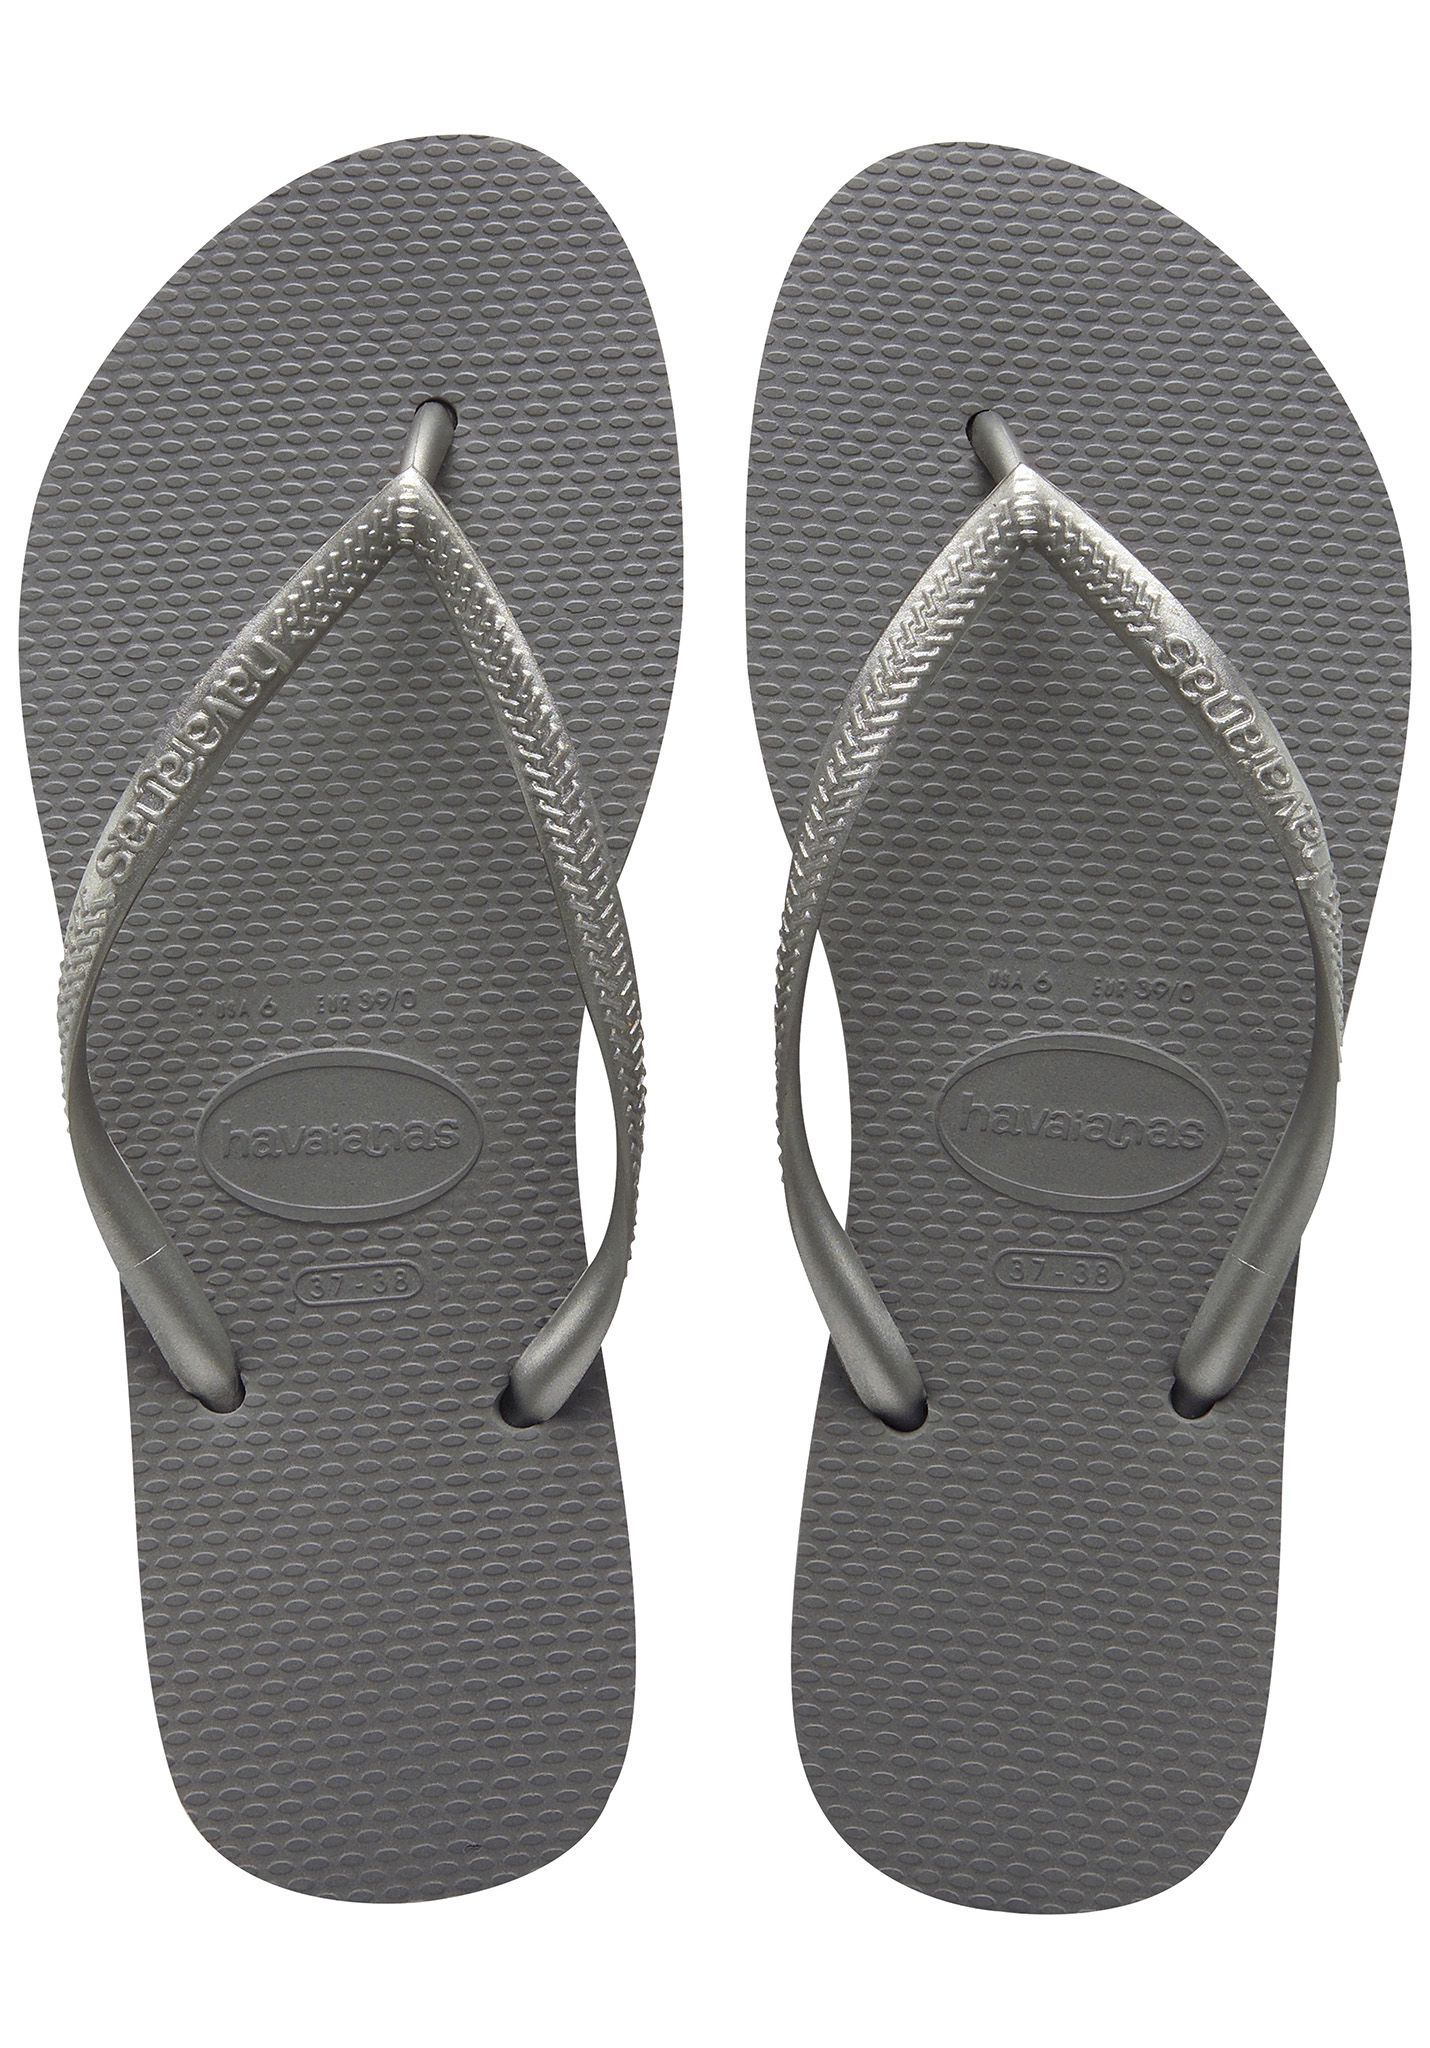 732296a9f HAVAIANAS Slim - Sandals for Women - Grey - Planet Sports